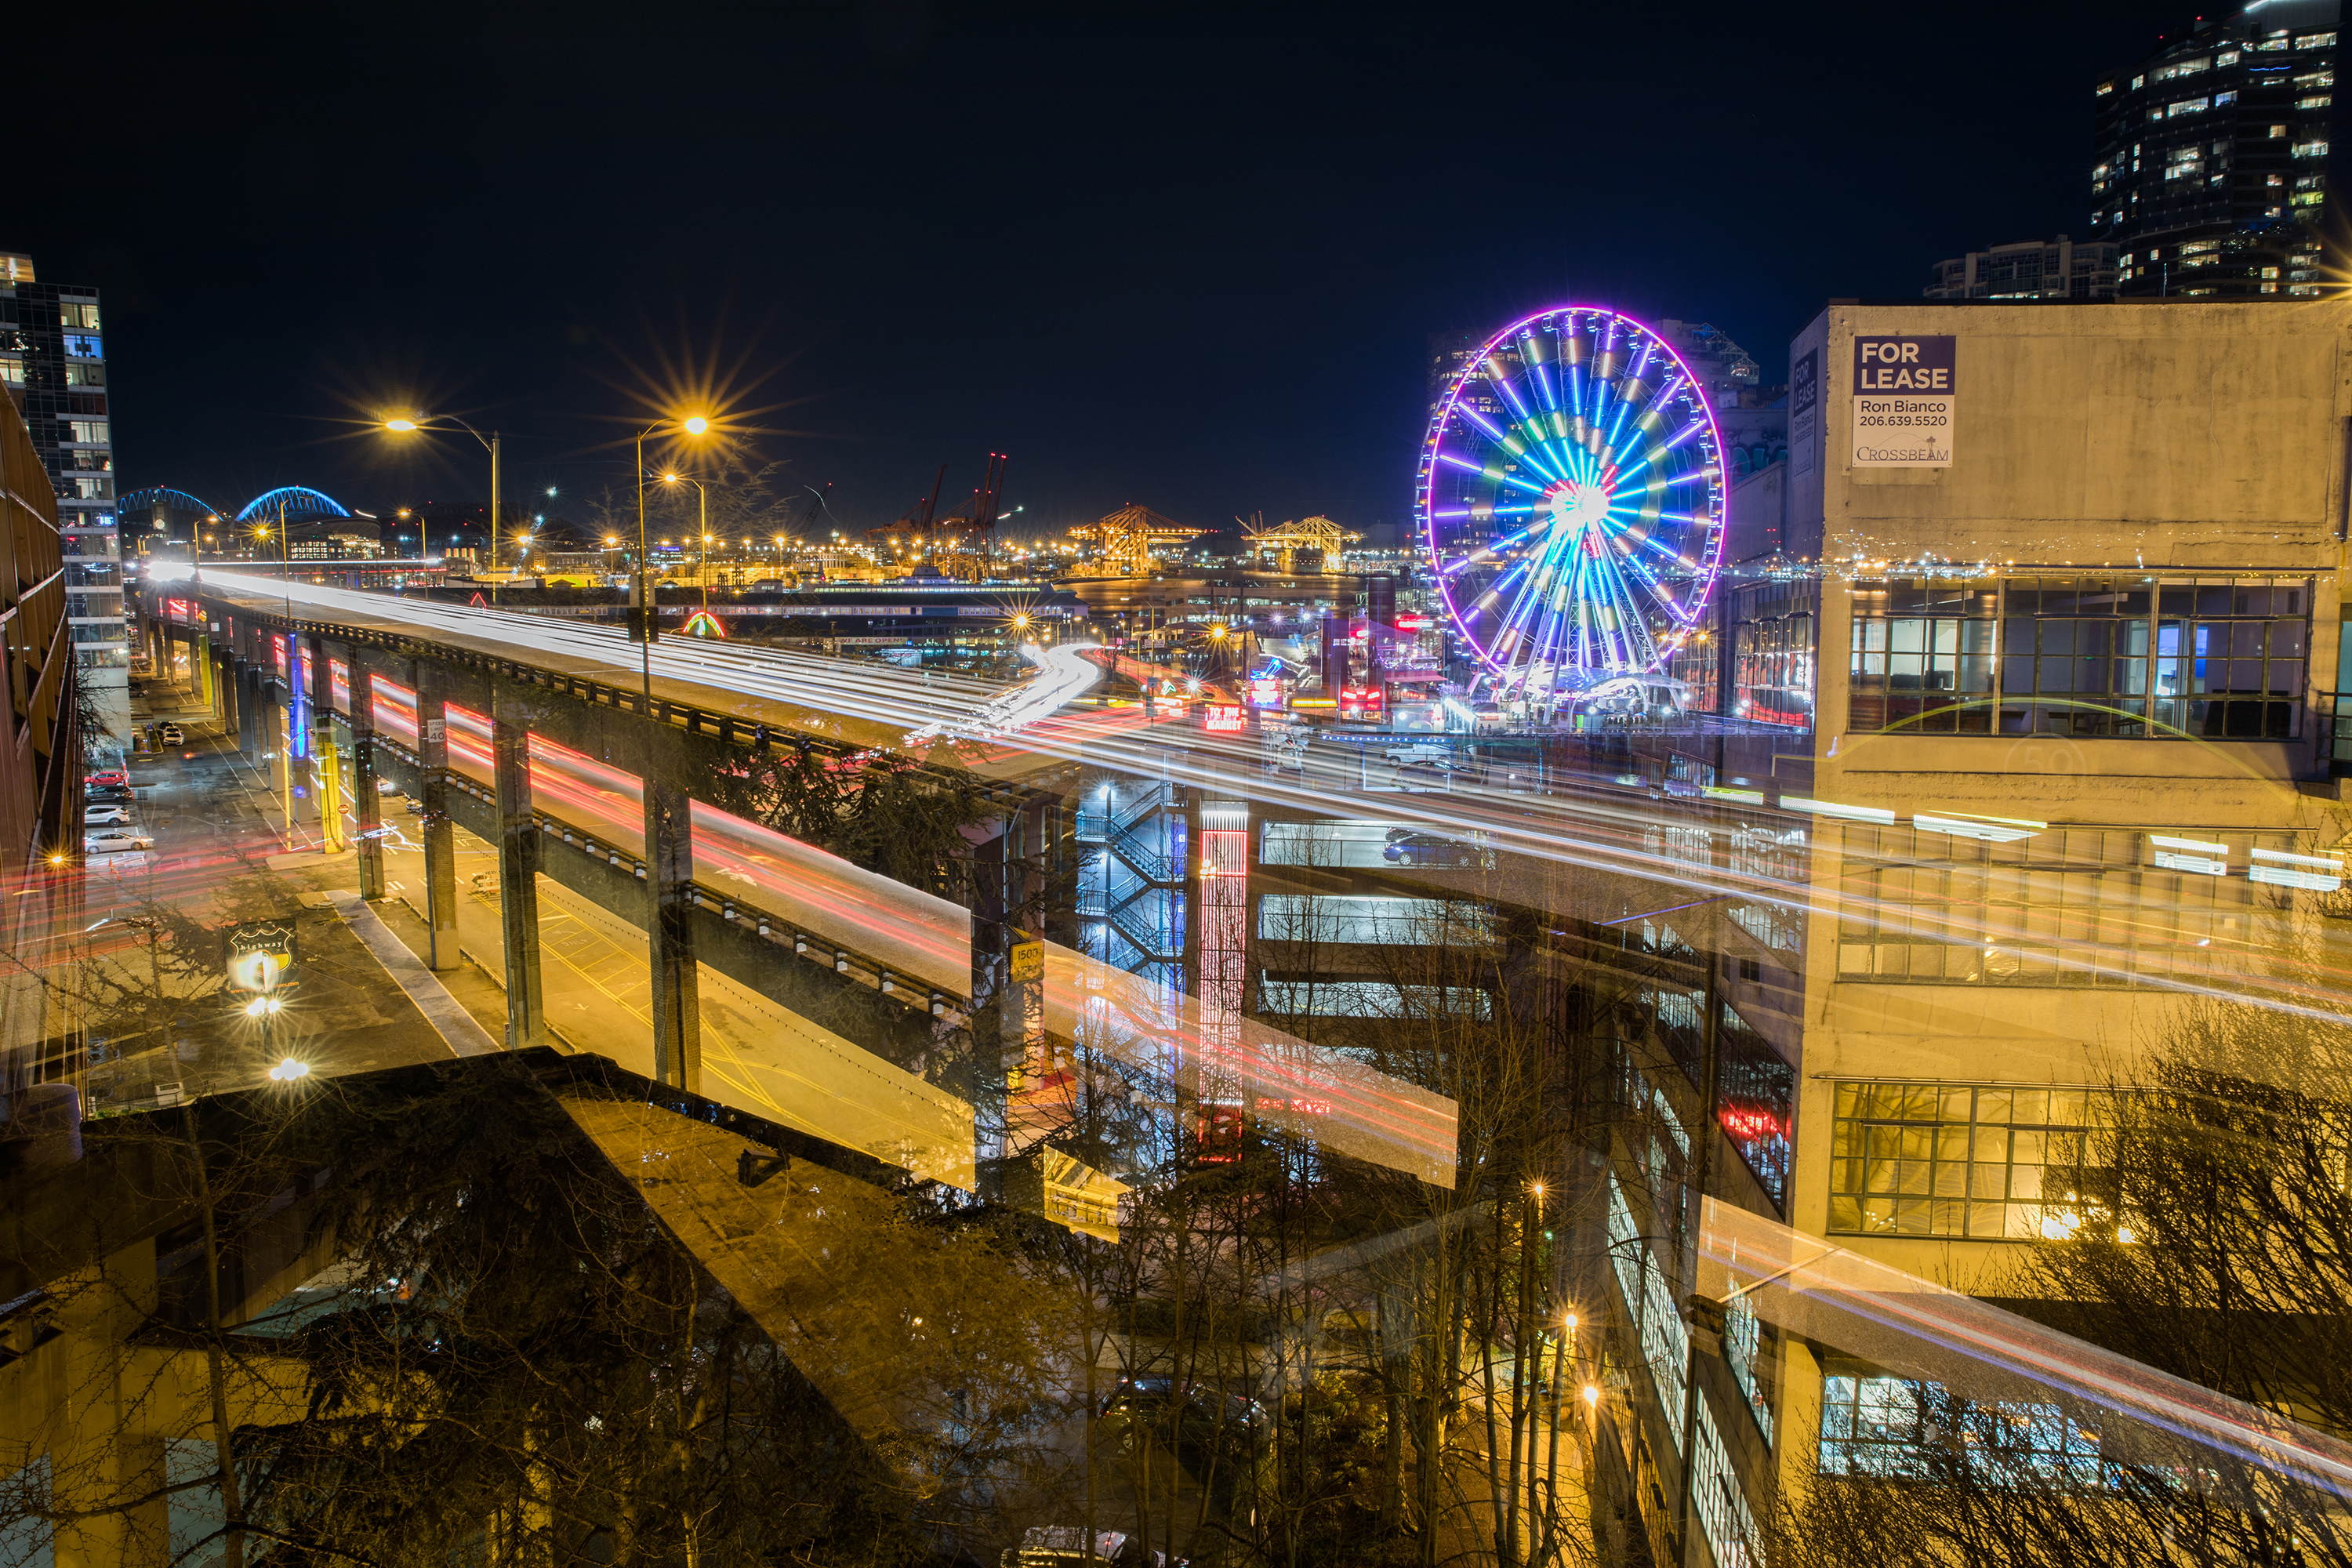 Saying goodbye to the Alaskan Way Viaduct